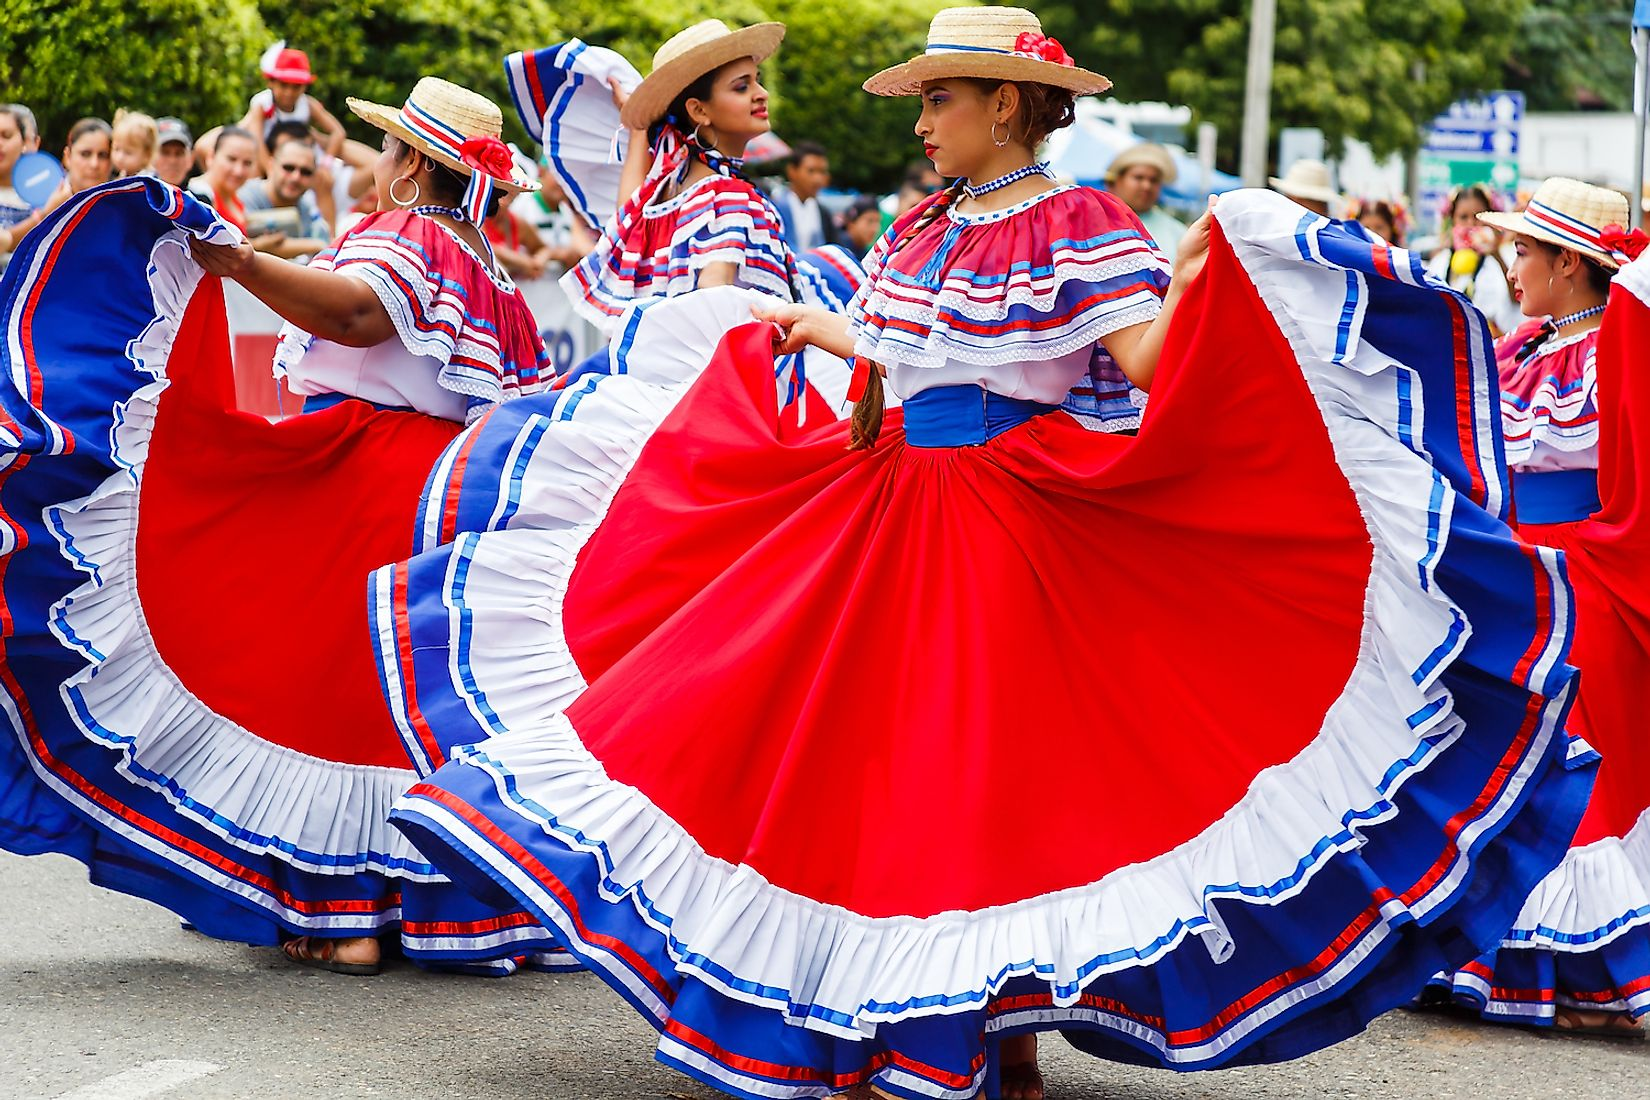 A Costa Rican traditional dance. Image credit: Cara Koch/Shutterstock.com